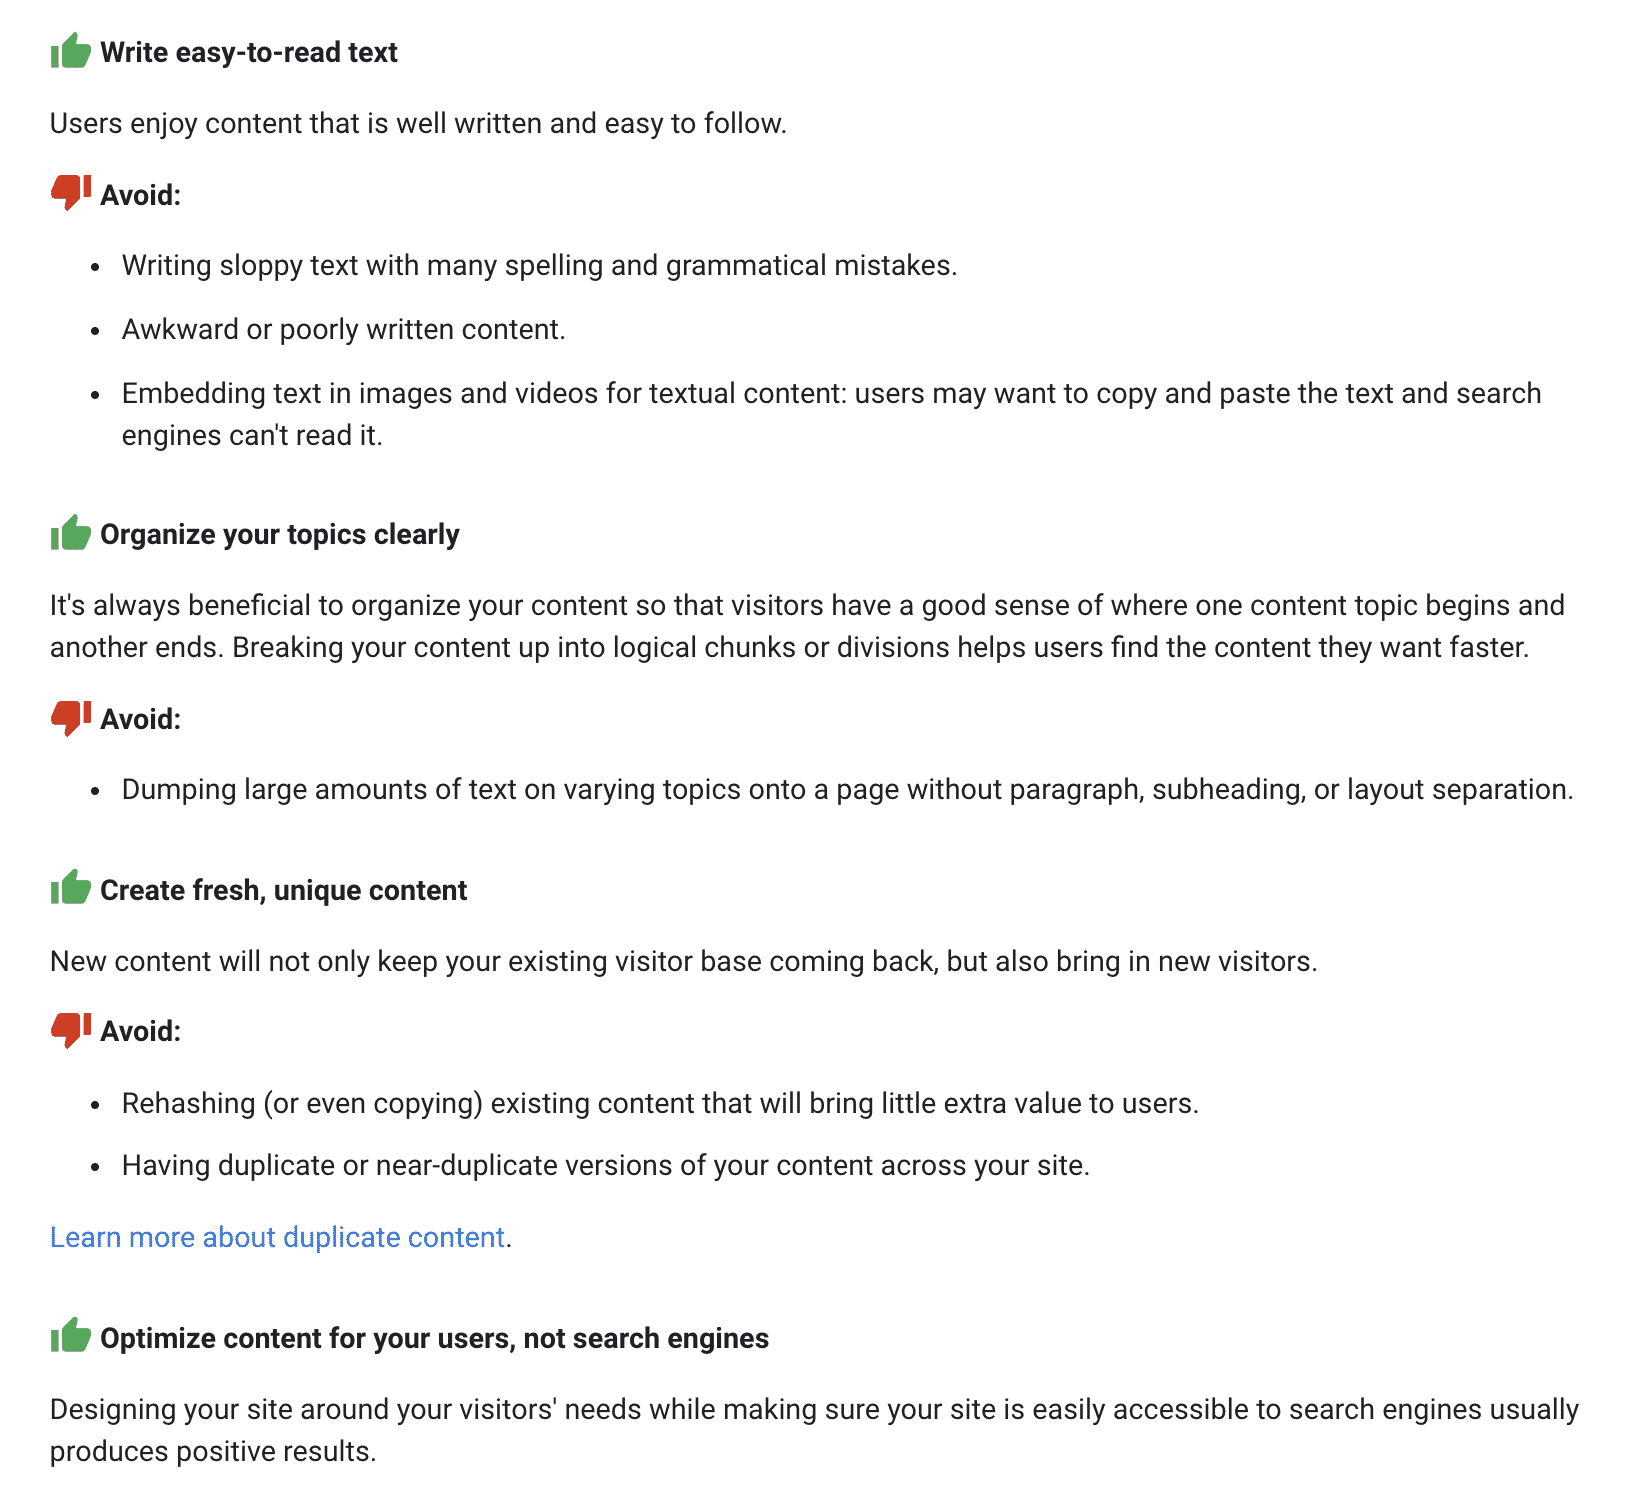 google's guidelines for useful content